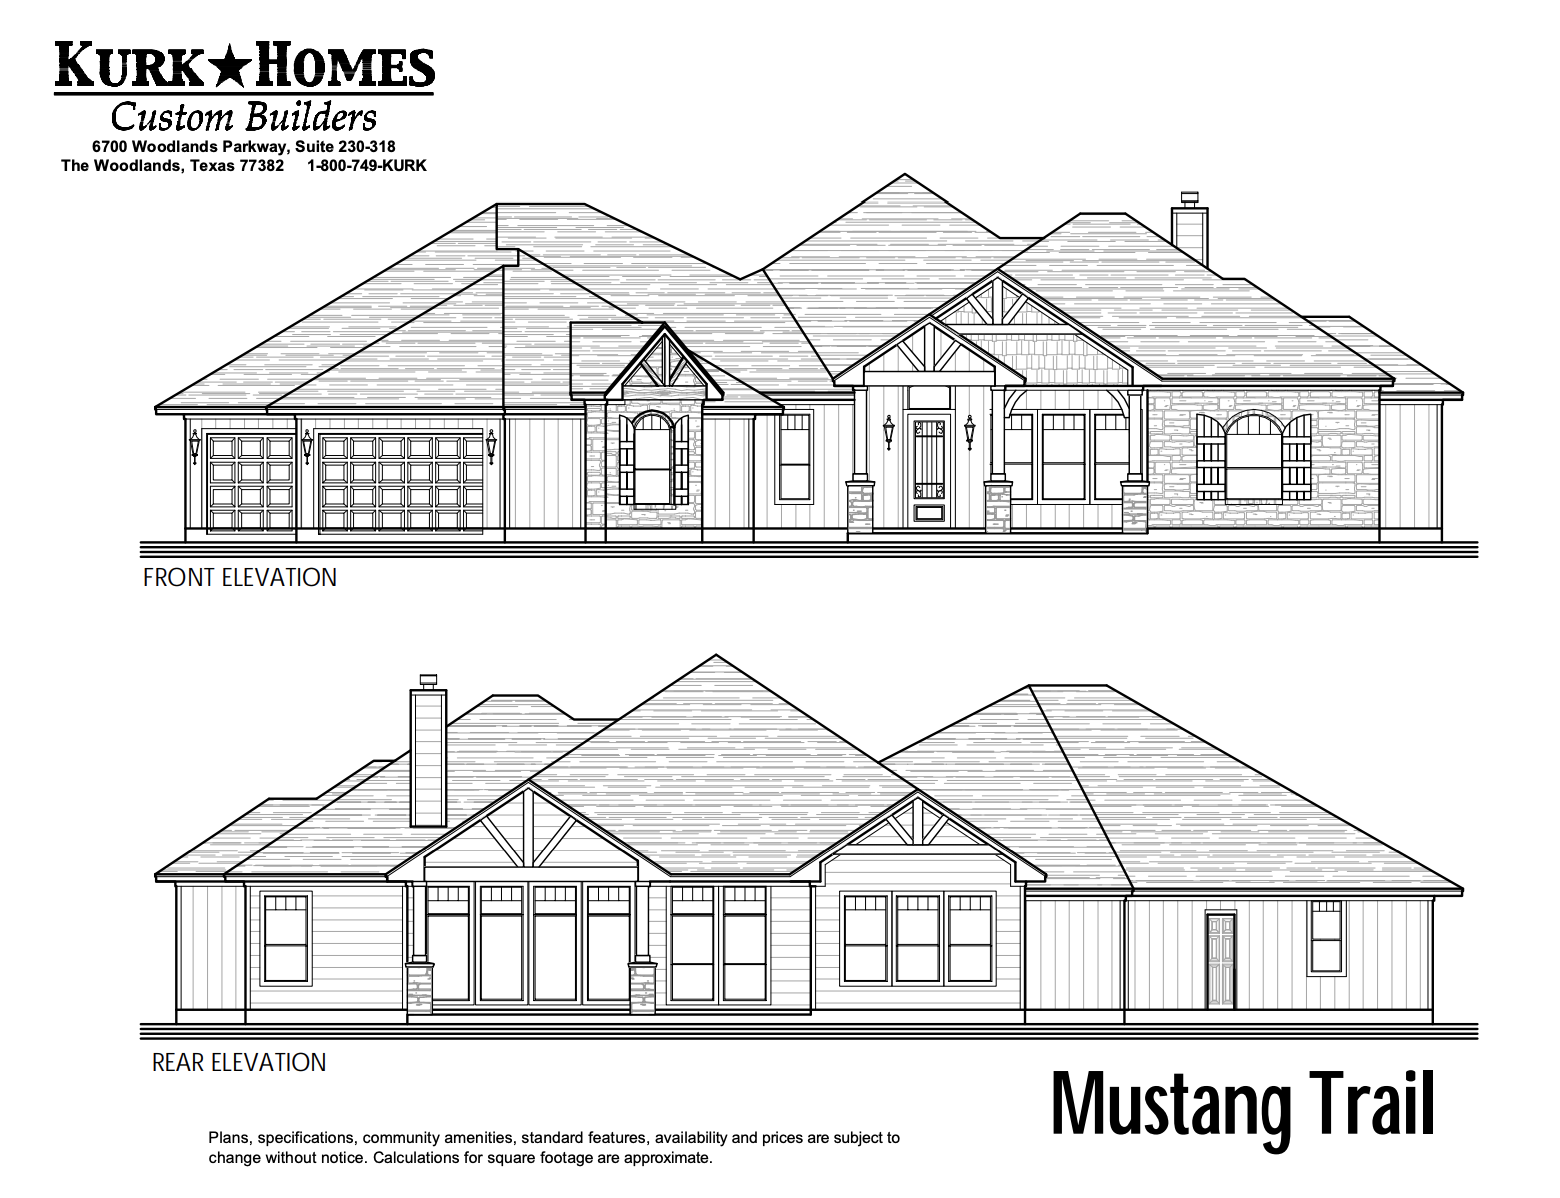 The Mustang Trail - Front Elevation